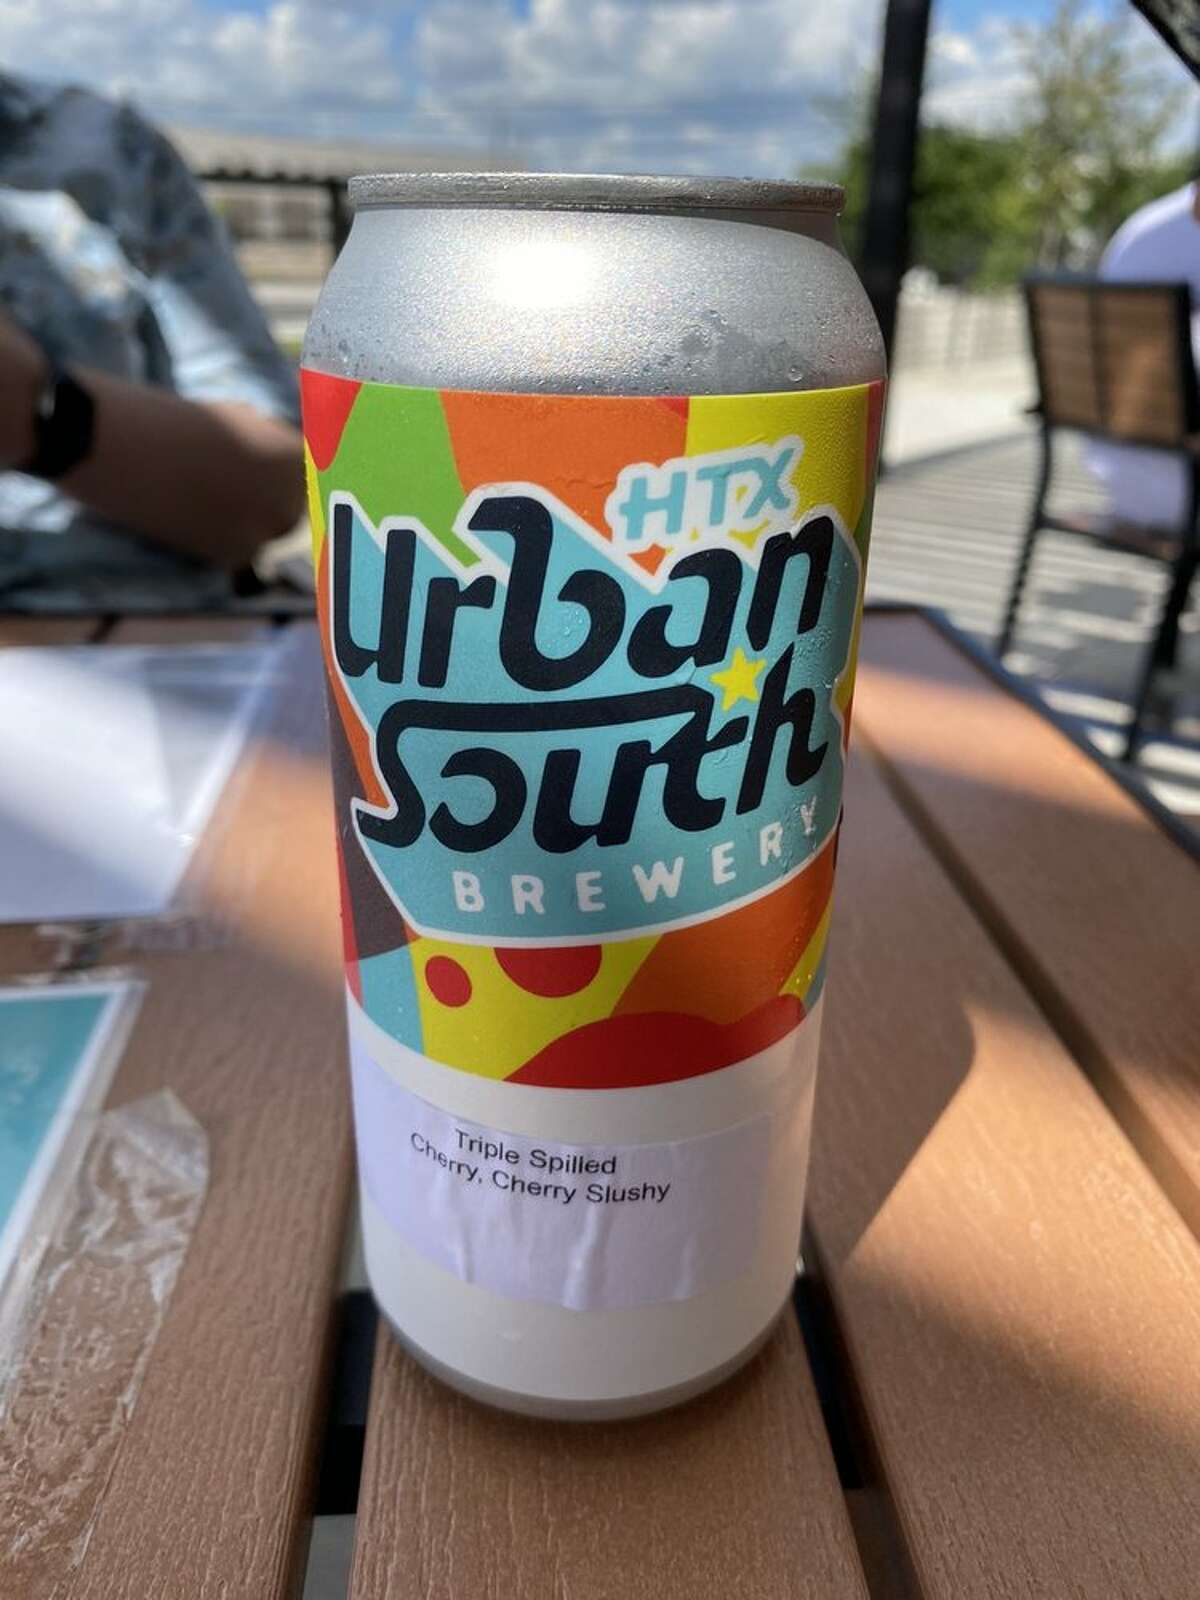 Urban South HTX's Triple Spilled is basically a beer version of a cherry slush. Photo: Justin T./Yelp